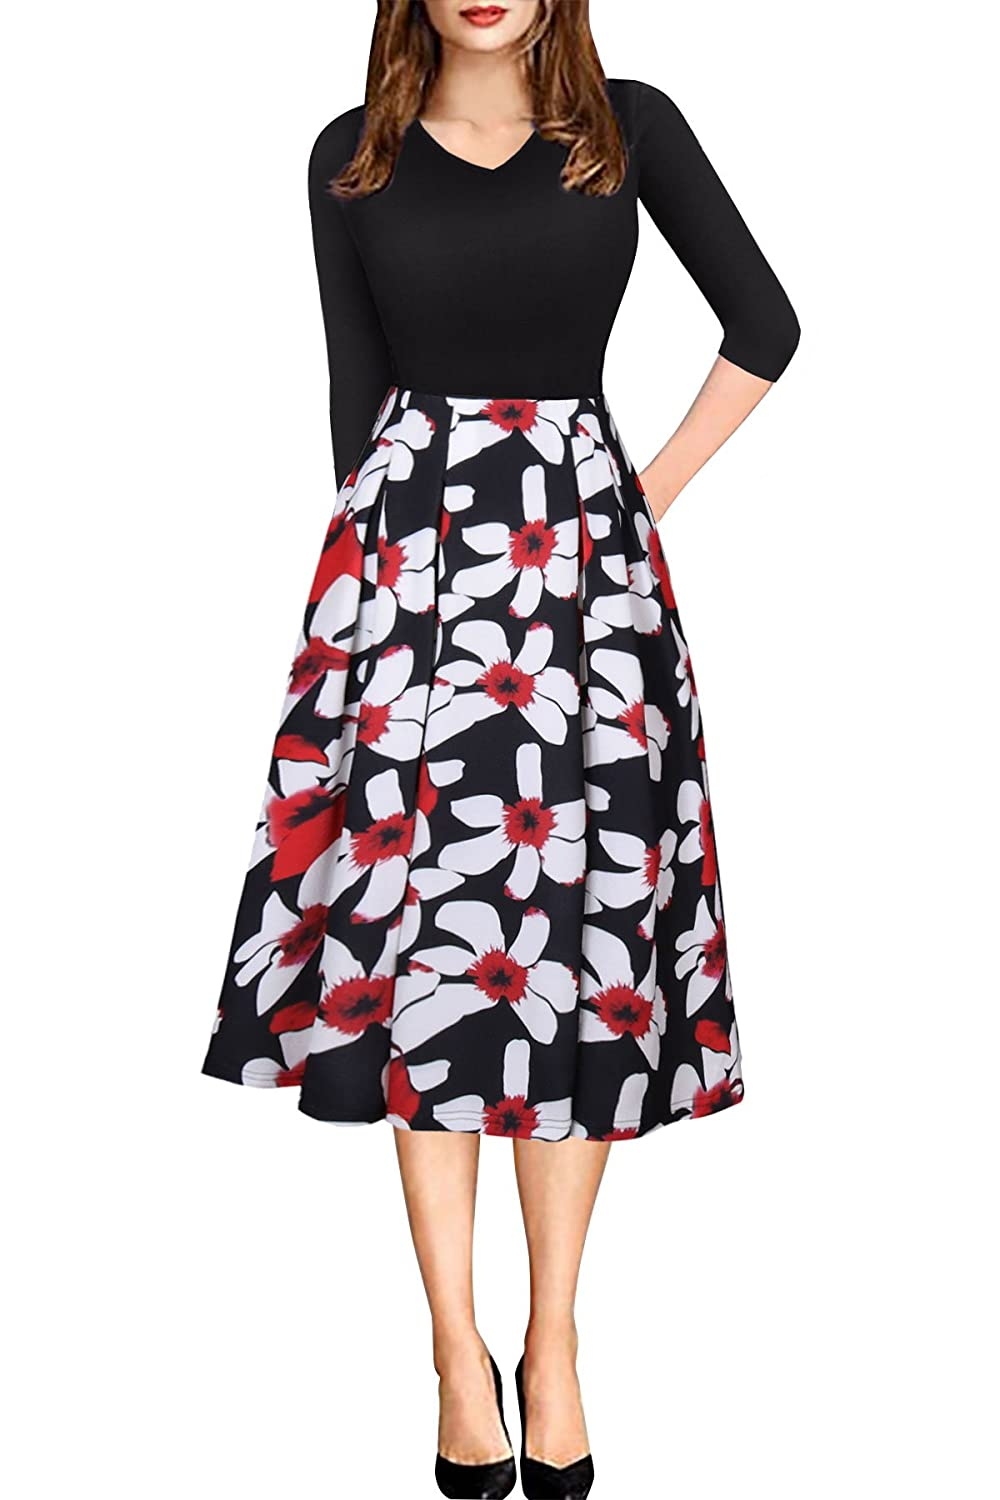 Black Raujout Pue Women's Casual Party Dress Flare Floral Contrast Evening Party Mini Dress